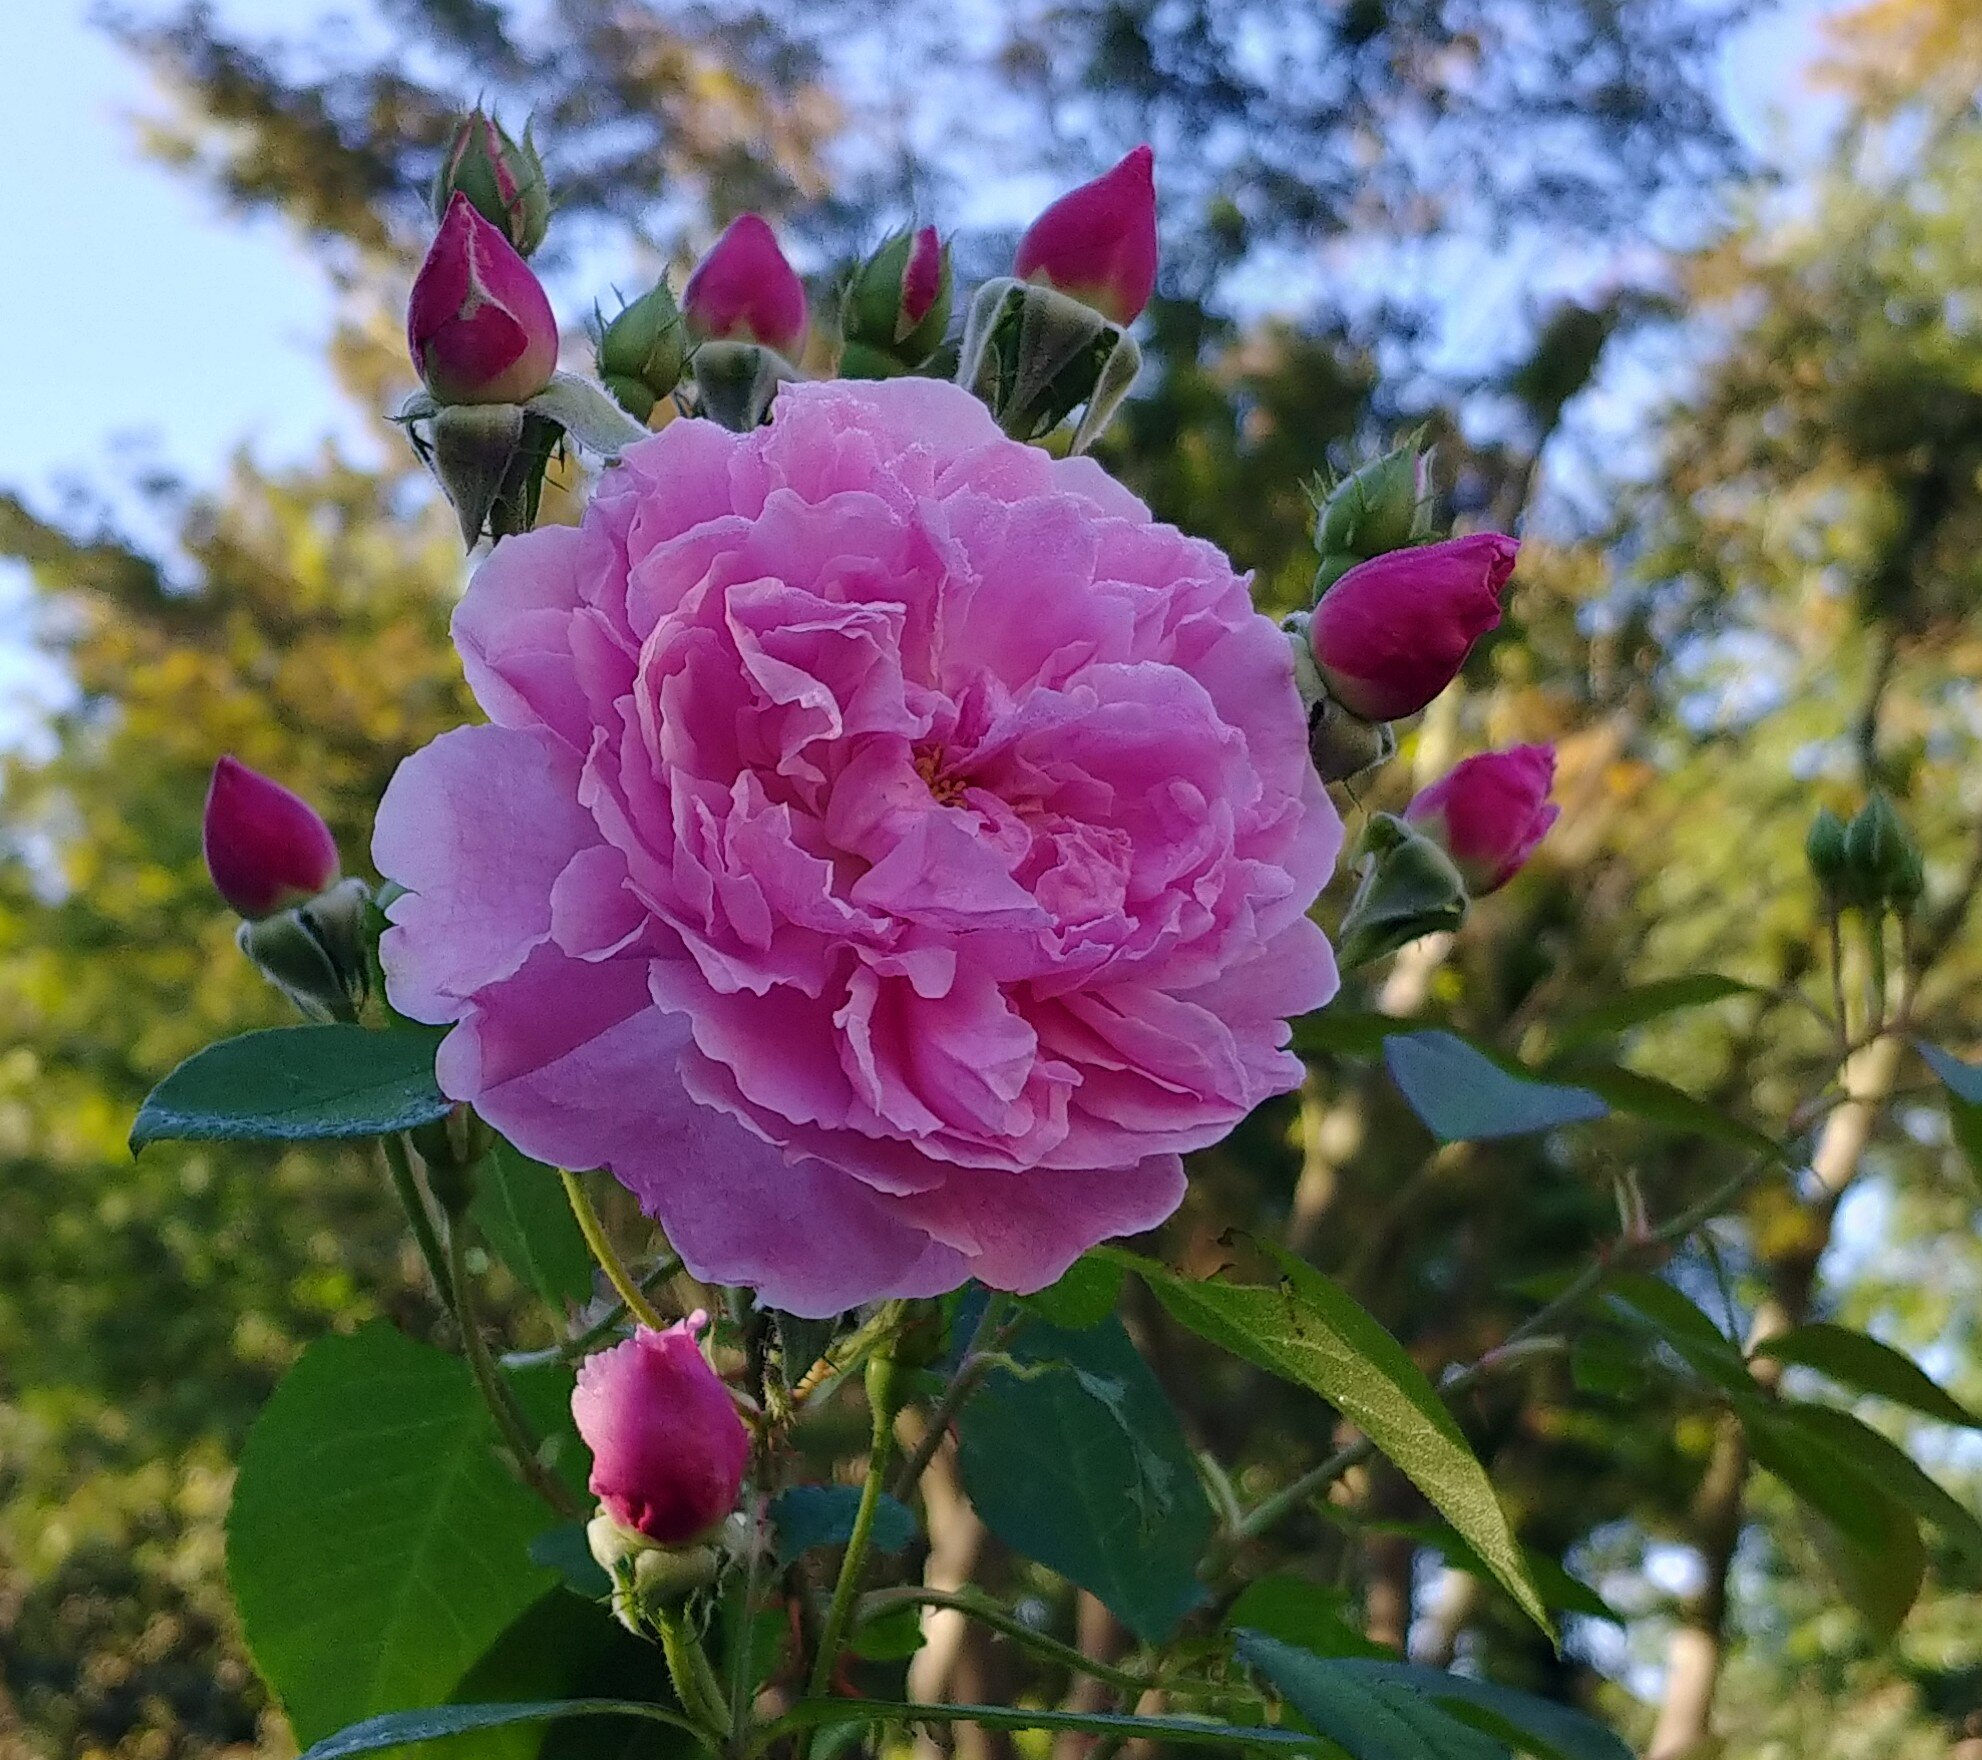 This is a David Austin standard rose called Harlow Carr - it smells amazing.